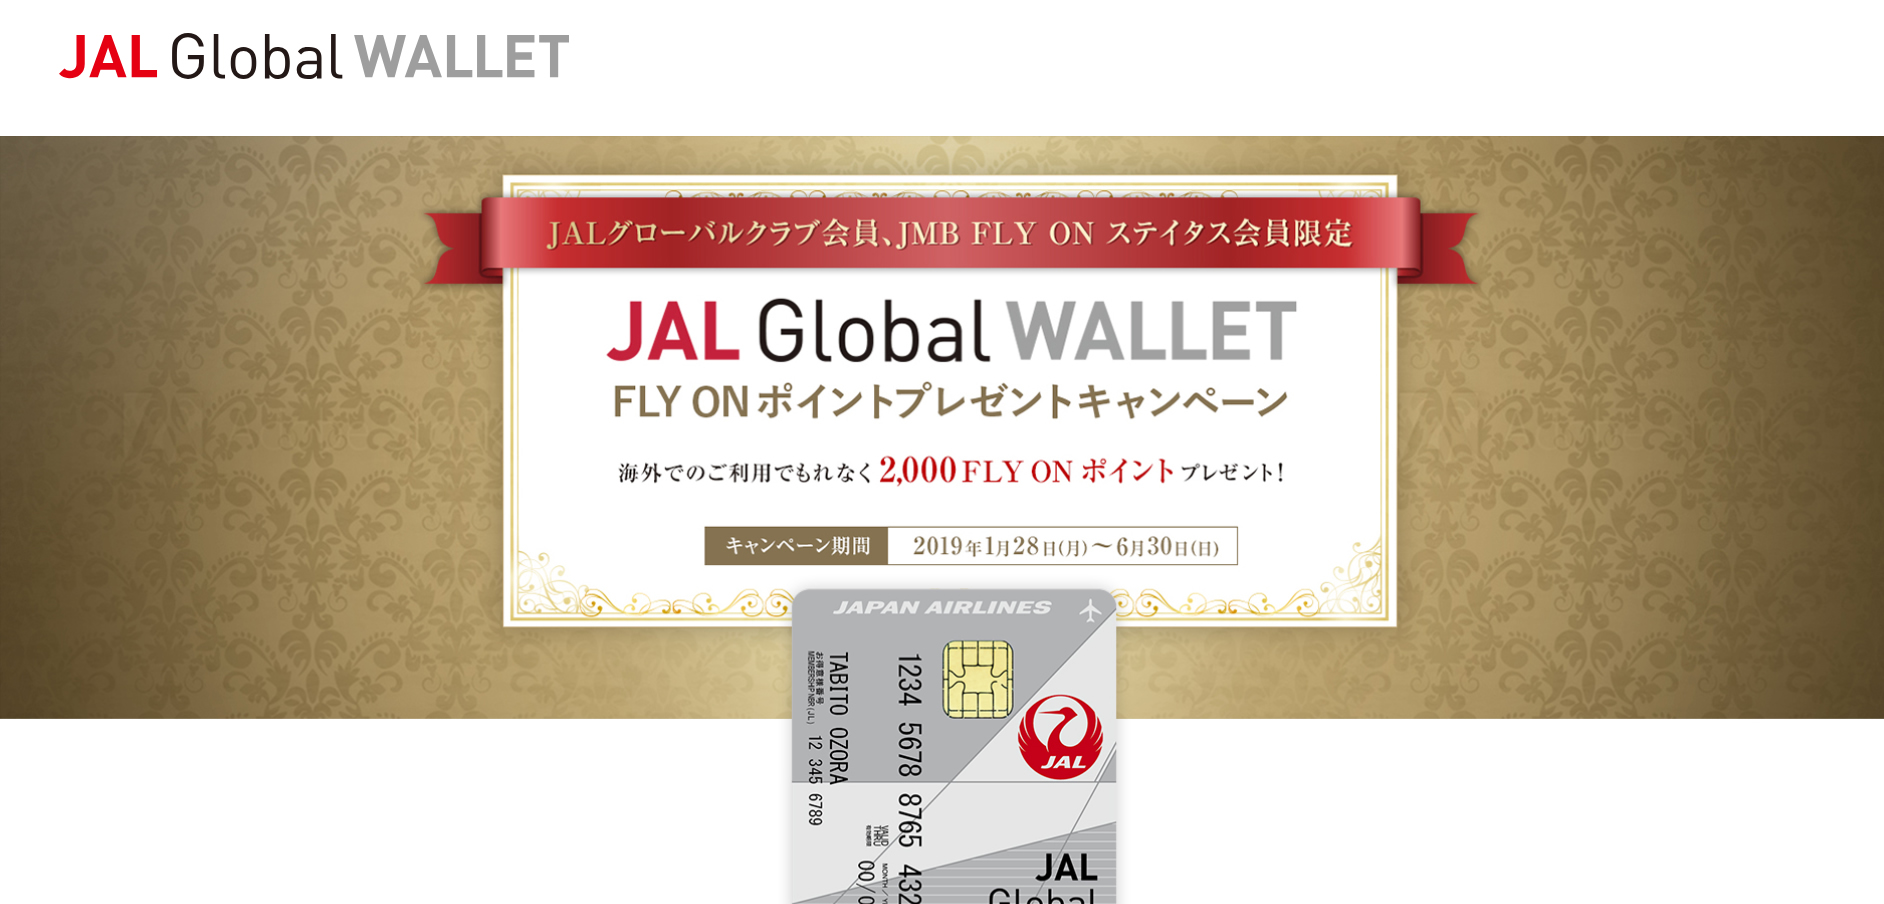 JAL Global WALLET キャンペーン